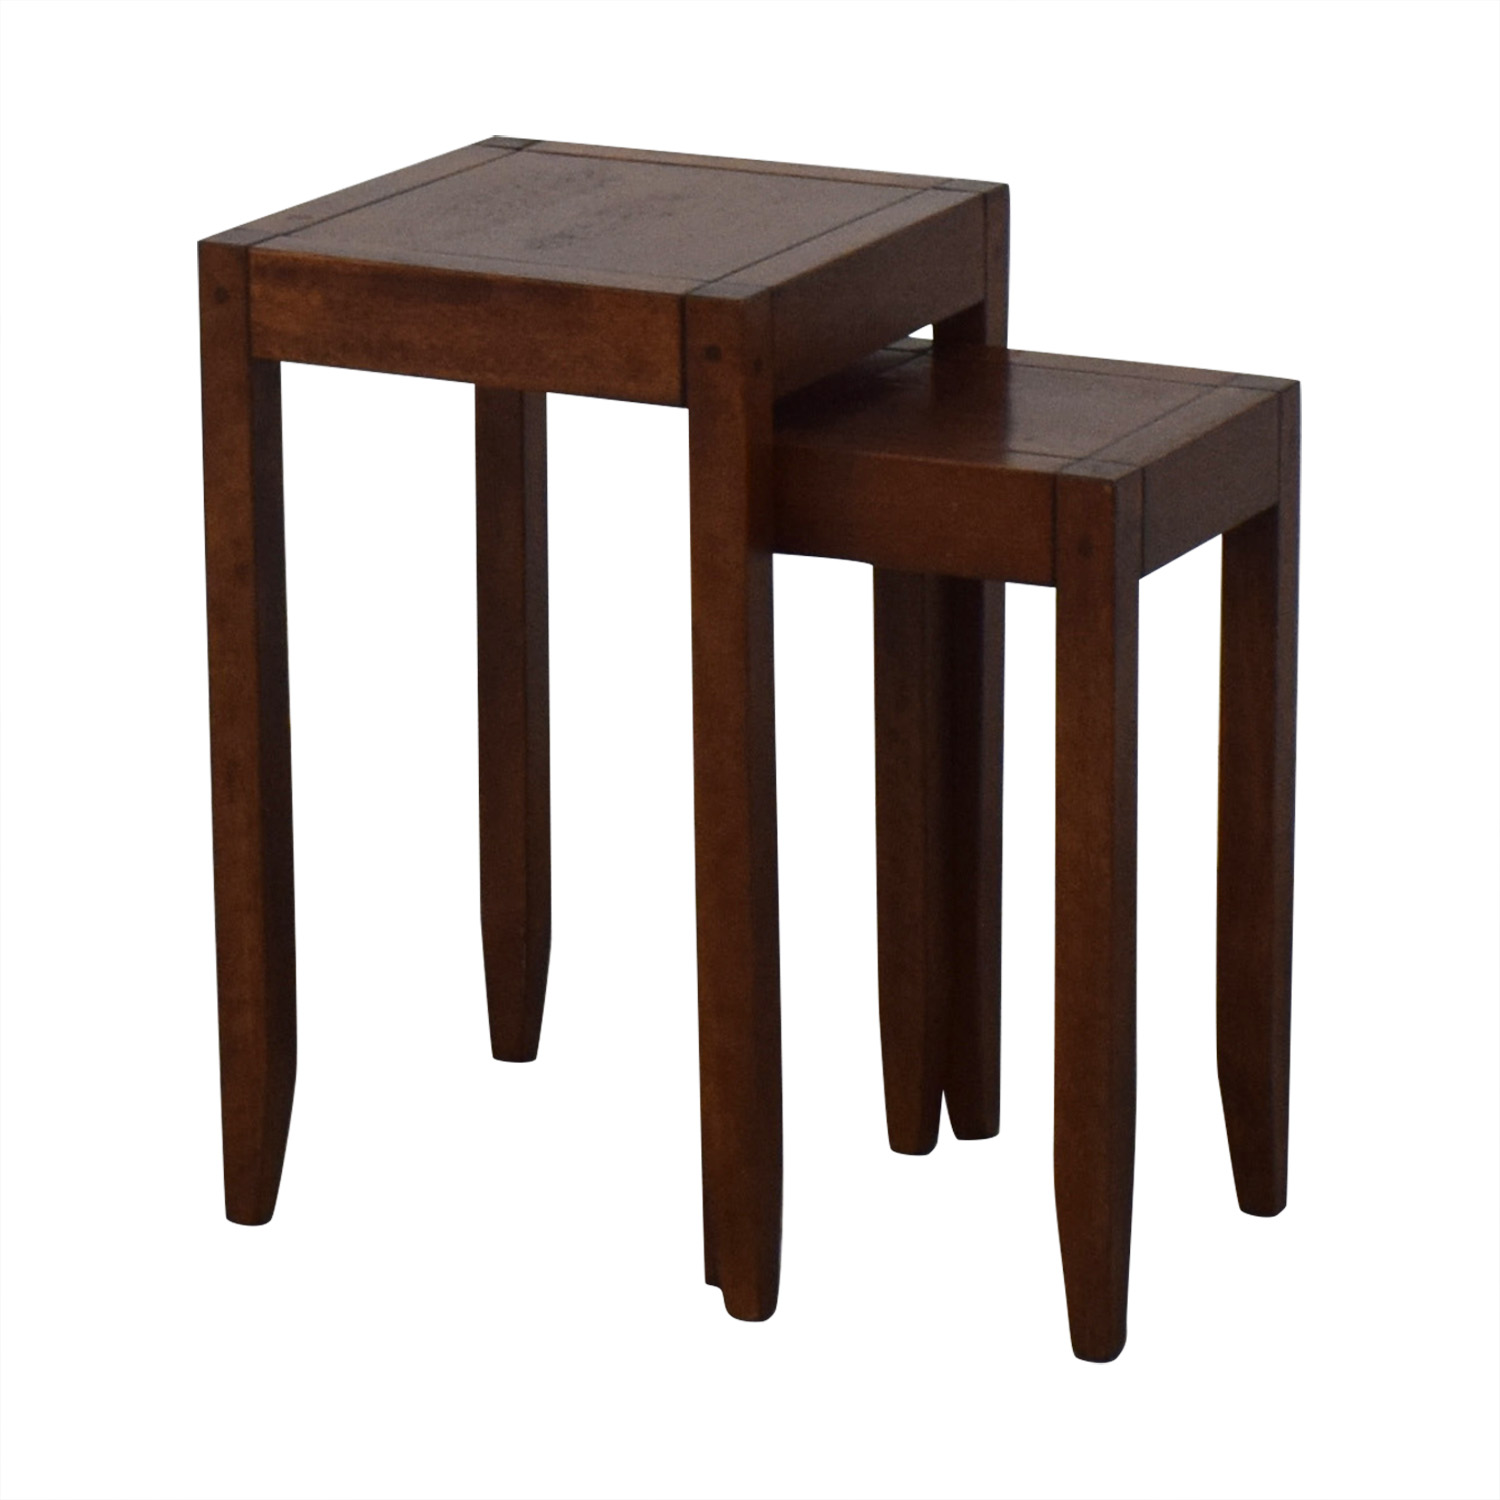 Nesting Accent Tables for sale